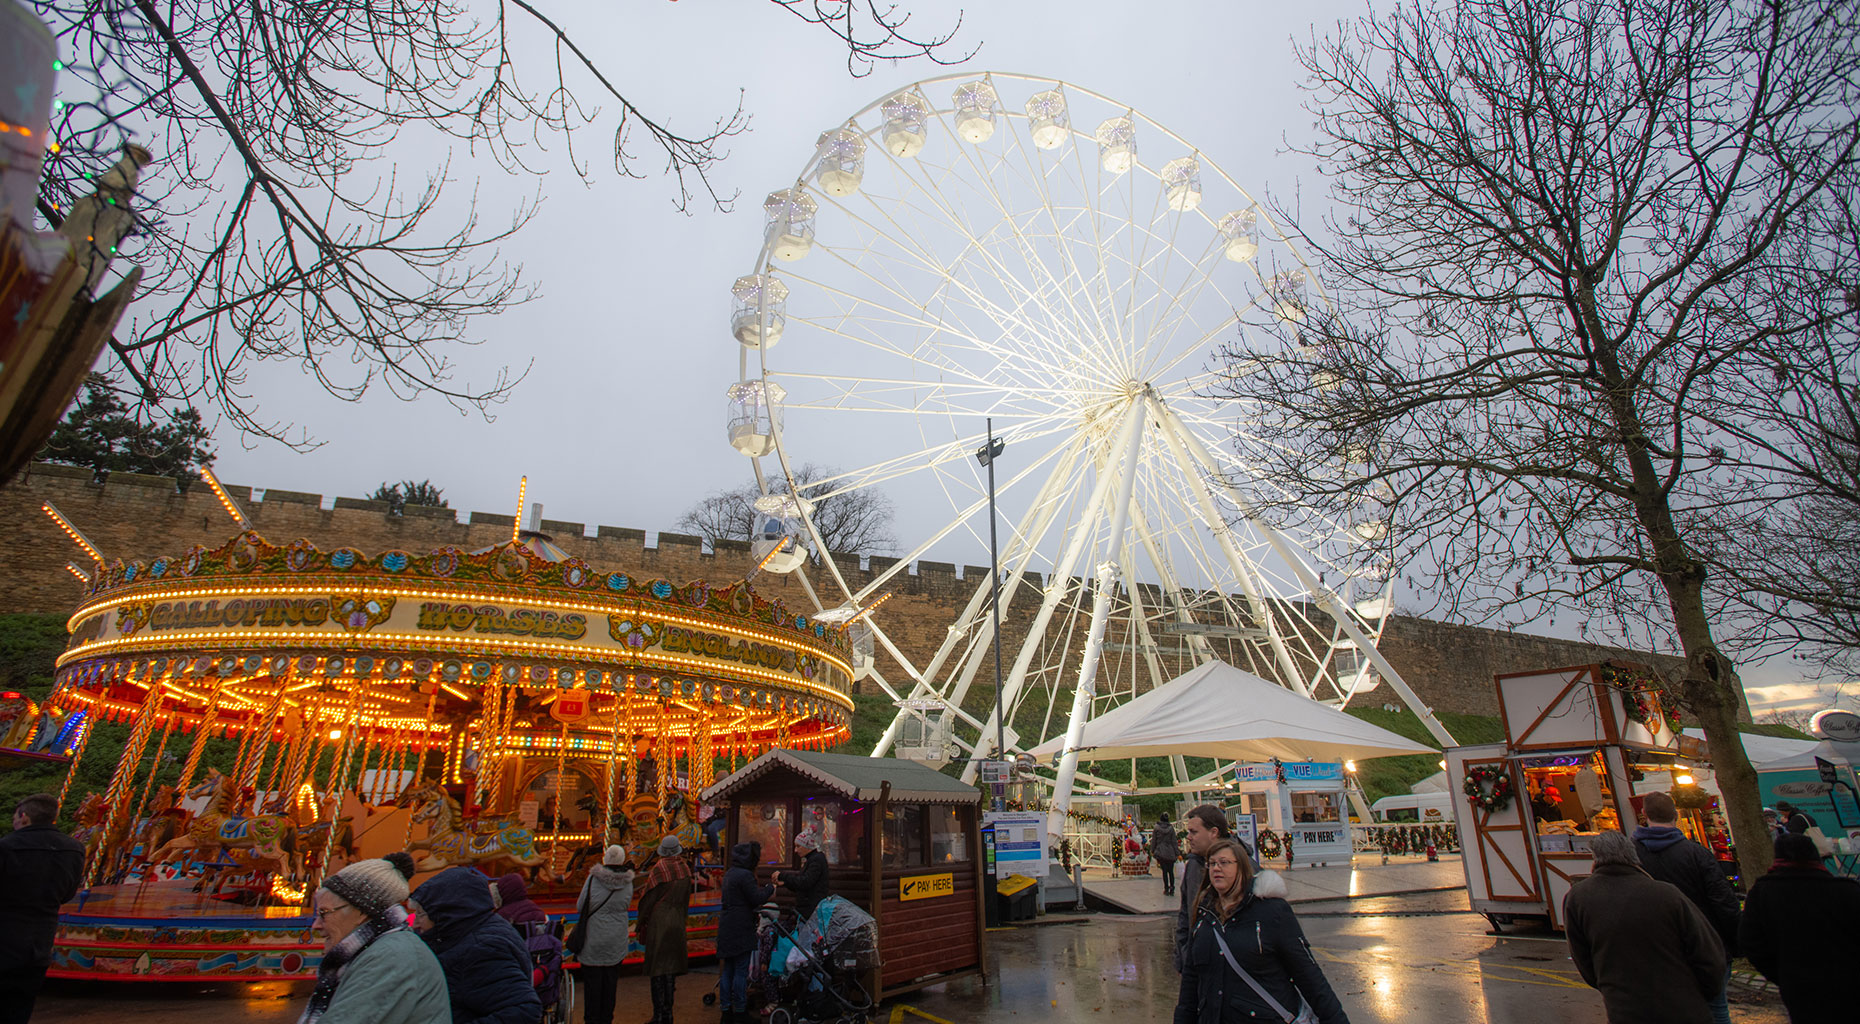 Lincoln reacts to 2020 Christmas Market COVID 19 cancellation